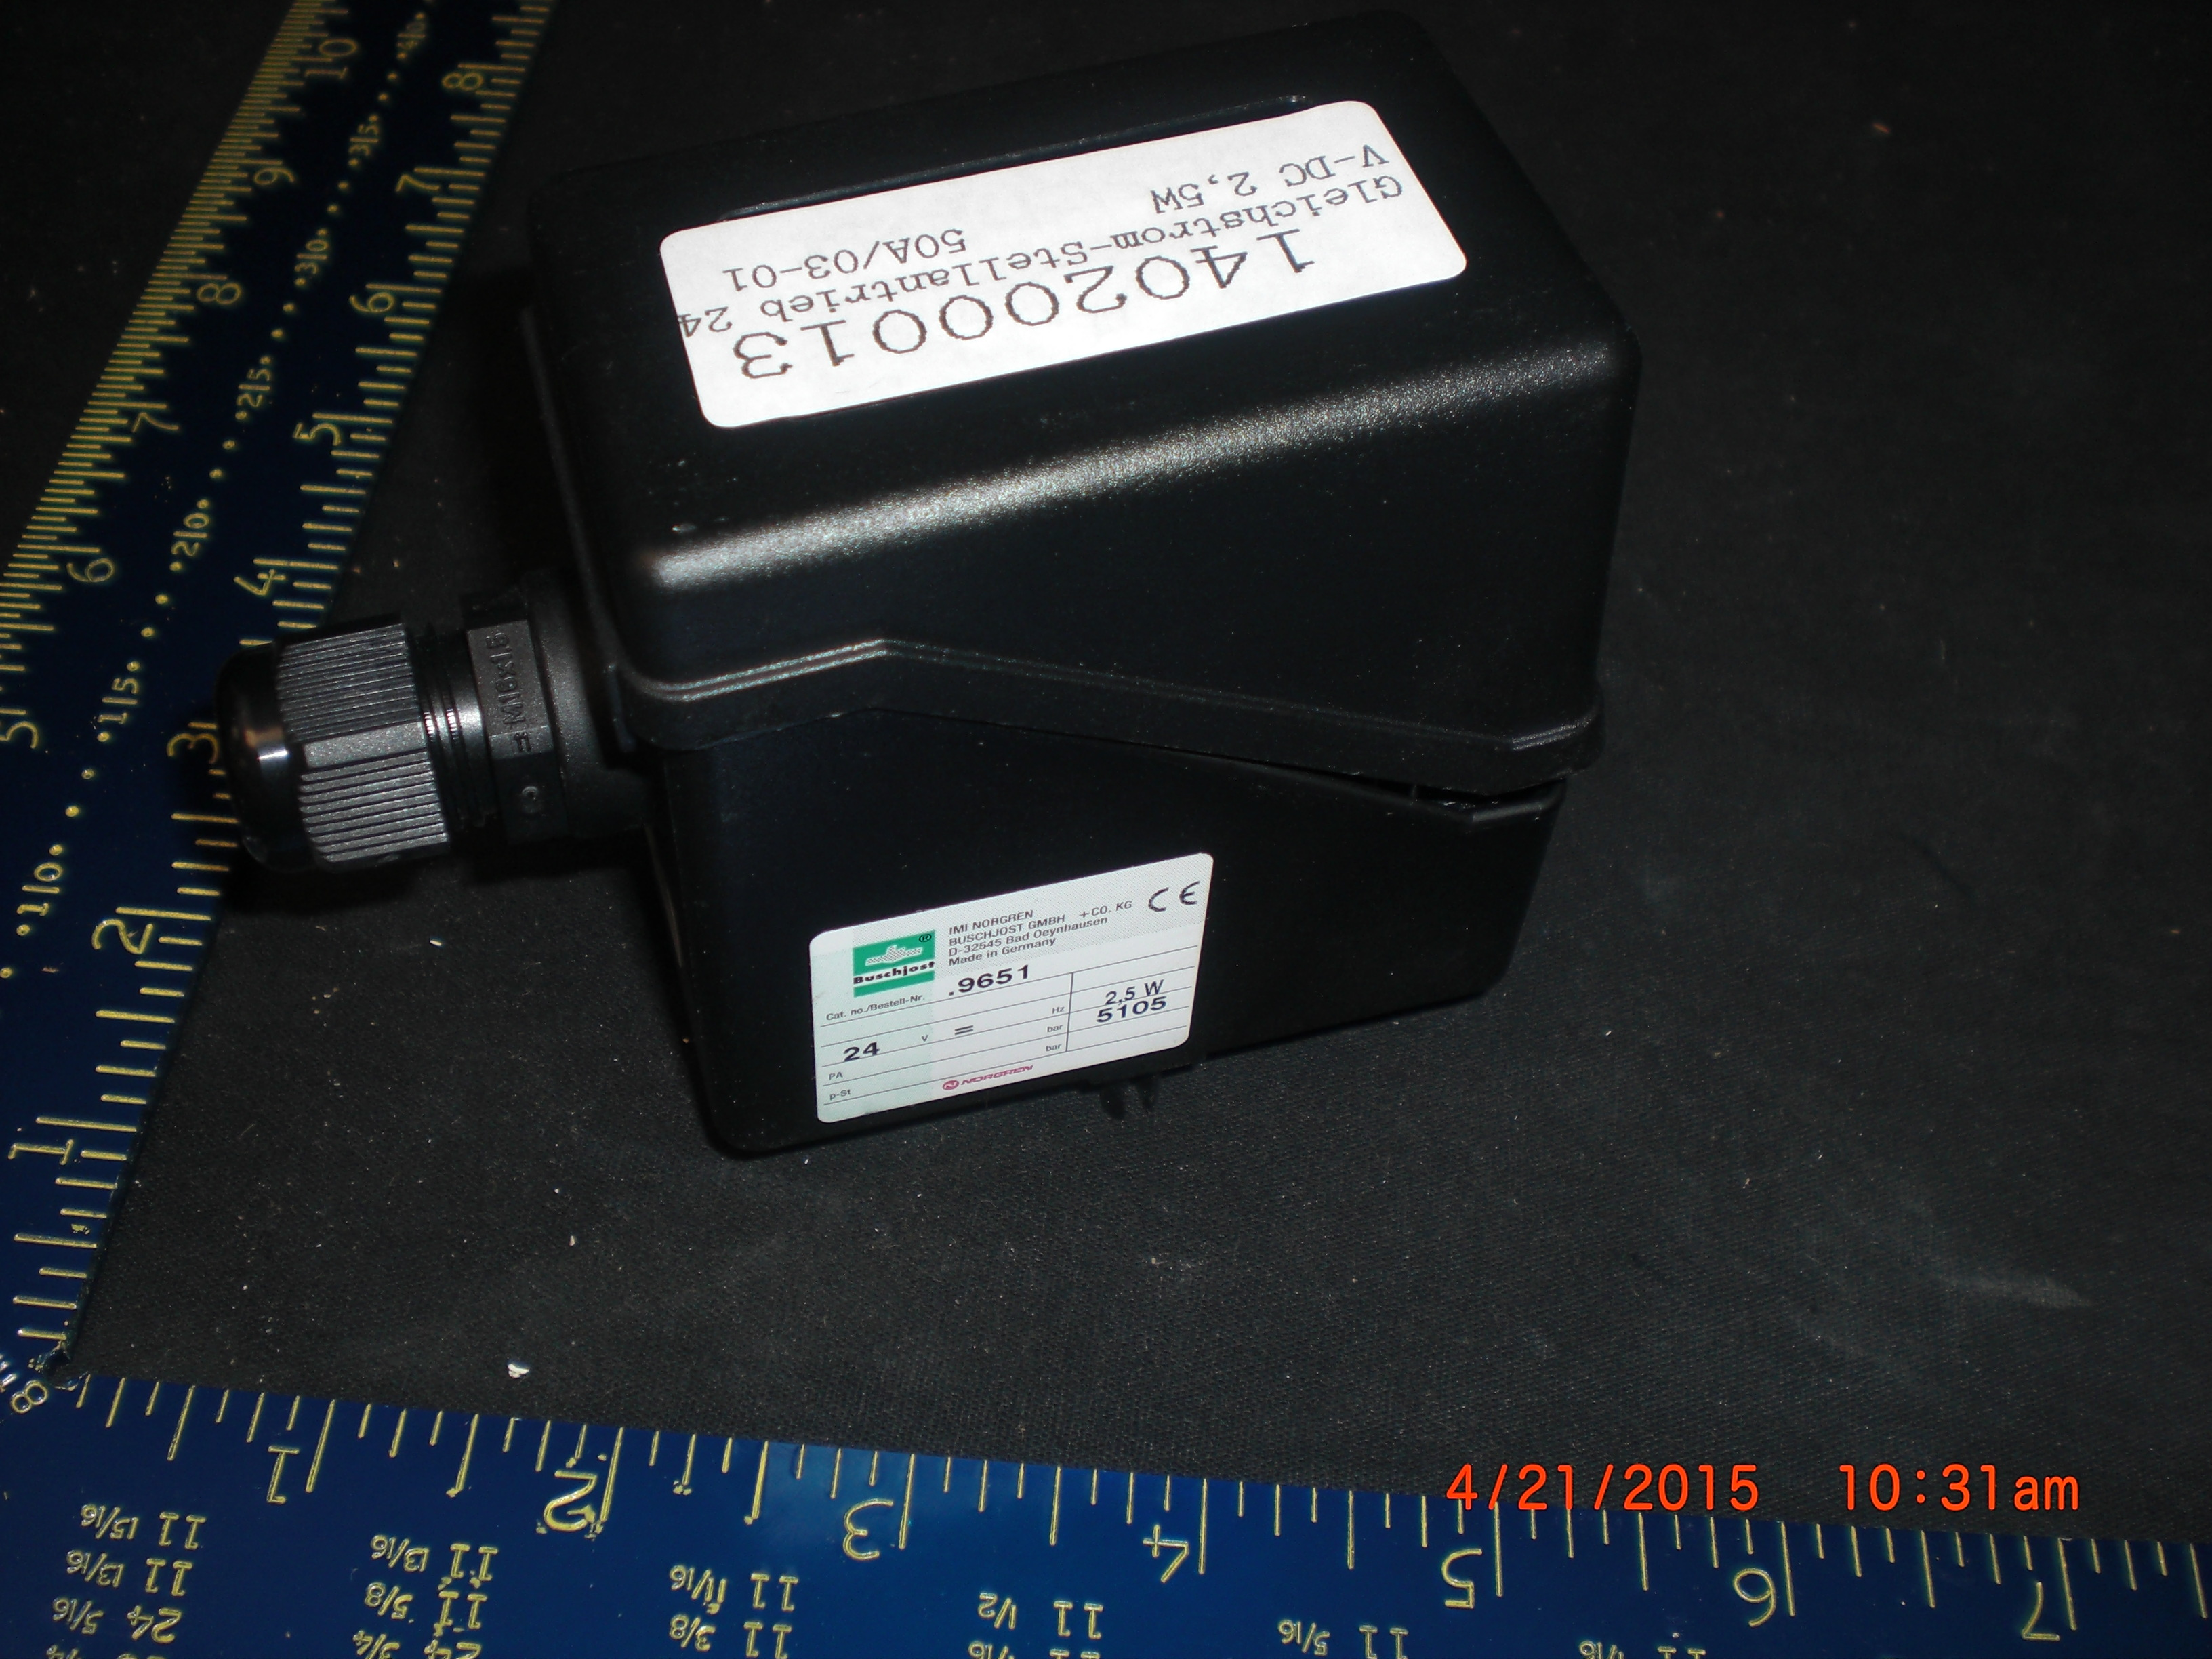 Actuator Valve  Rotary 24 VDC 2,5W, 50A/03-01 BUSCHJOST 9651